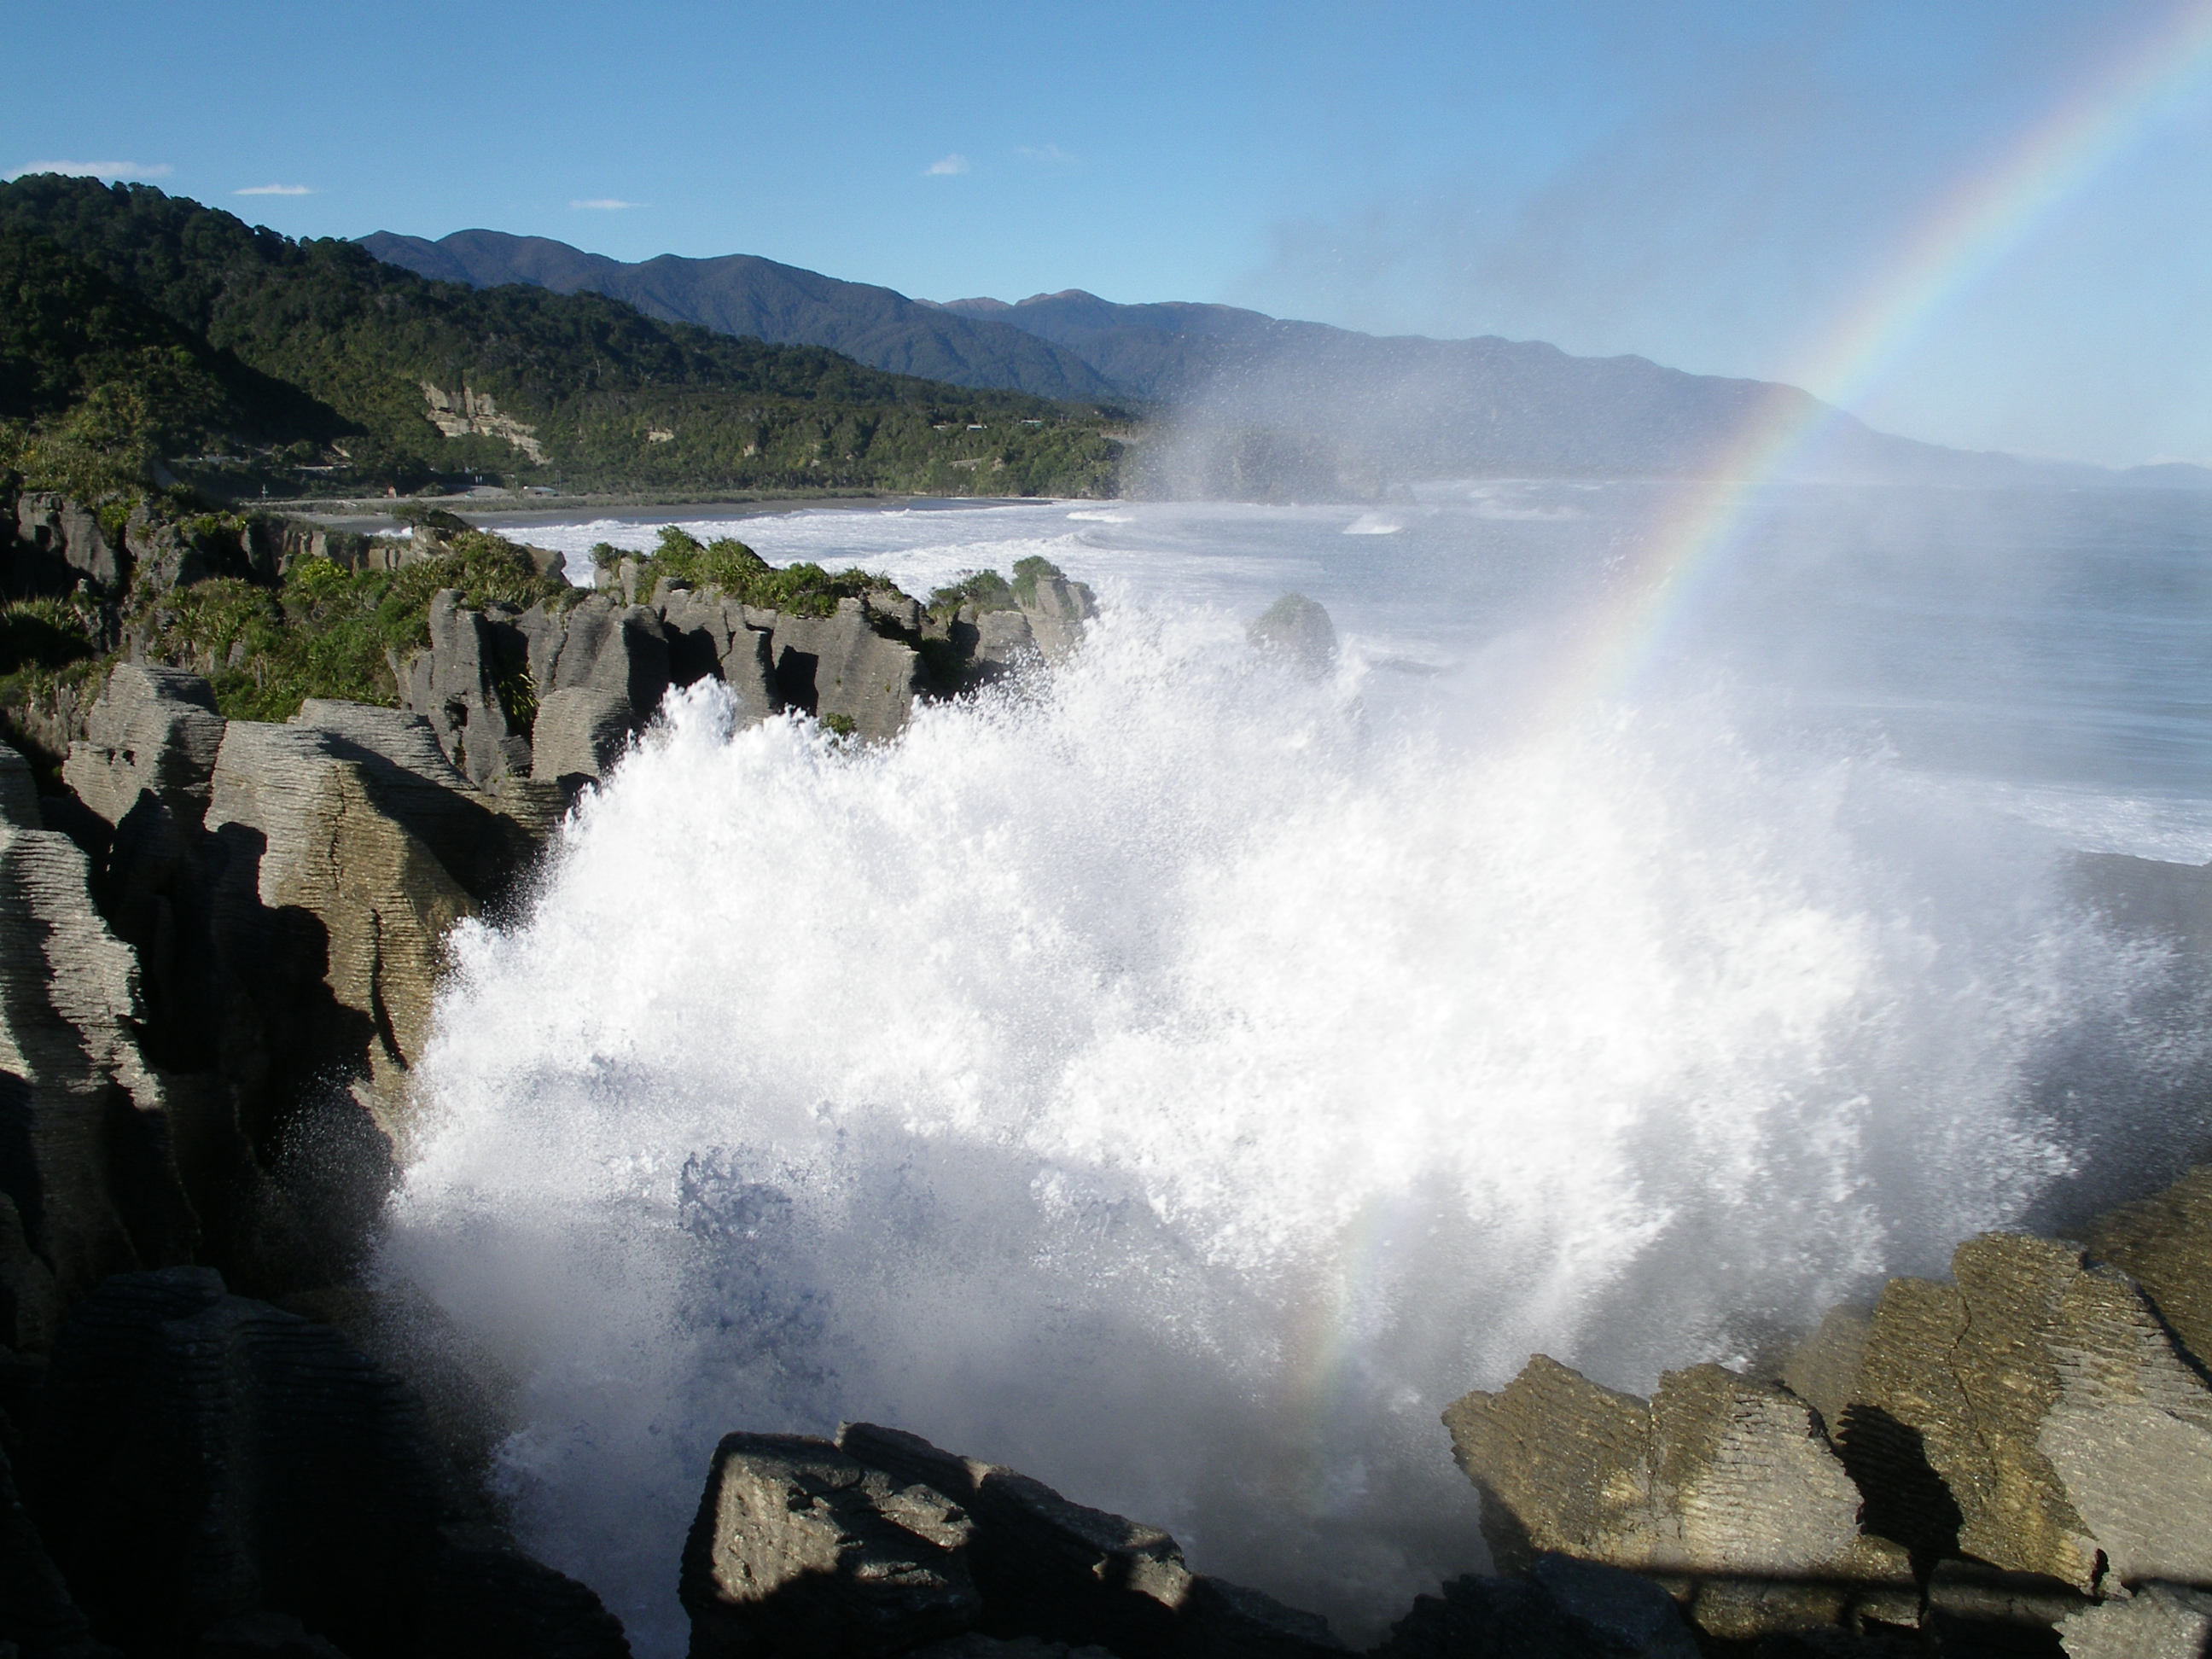 40 Million Sheep Punakaiki Pancake Rocks and Blowholes